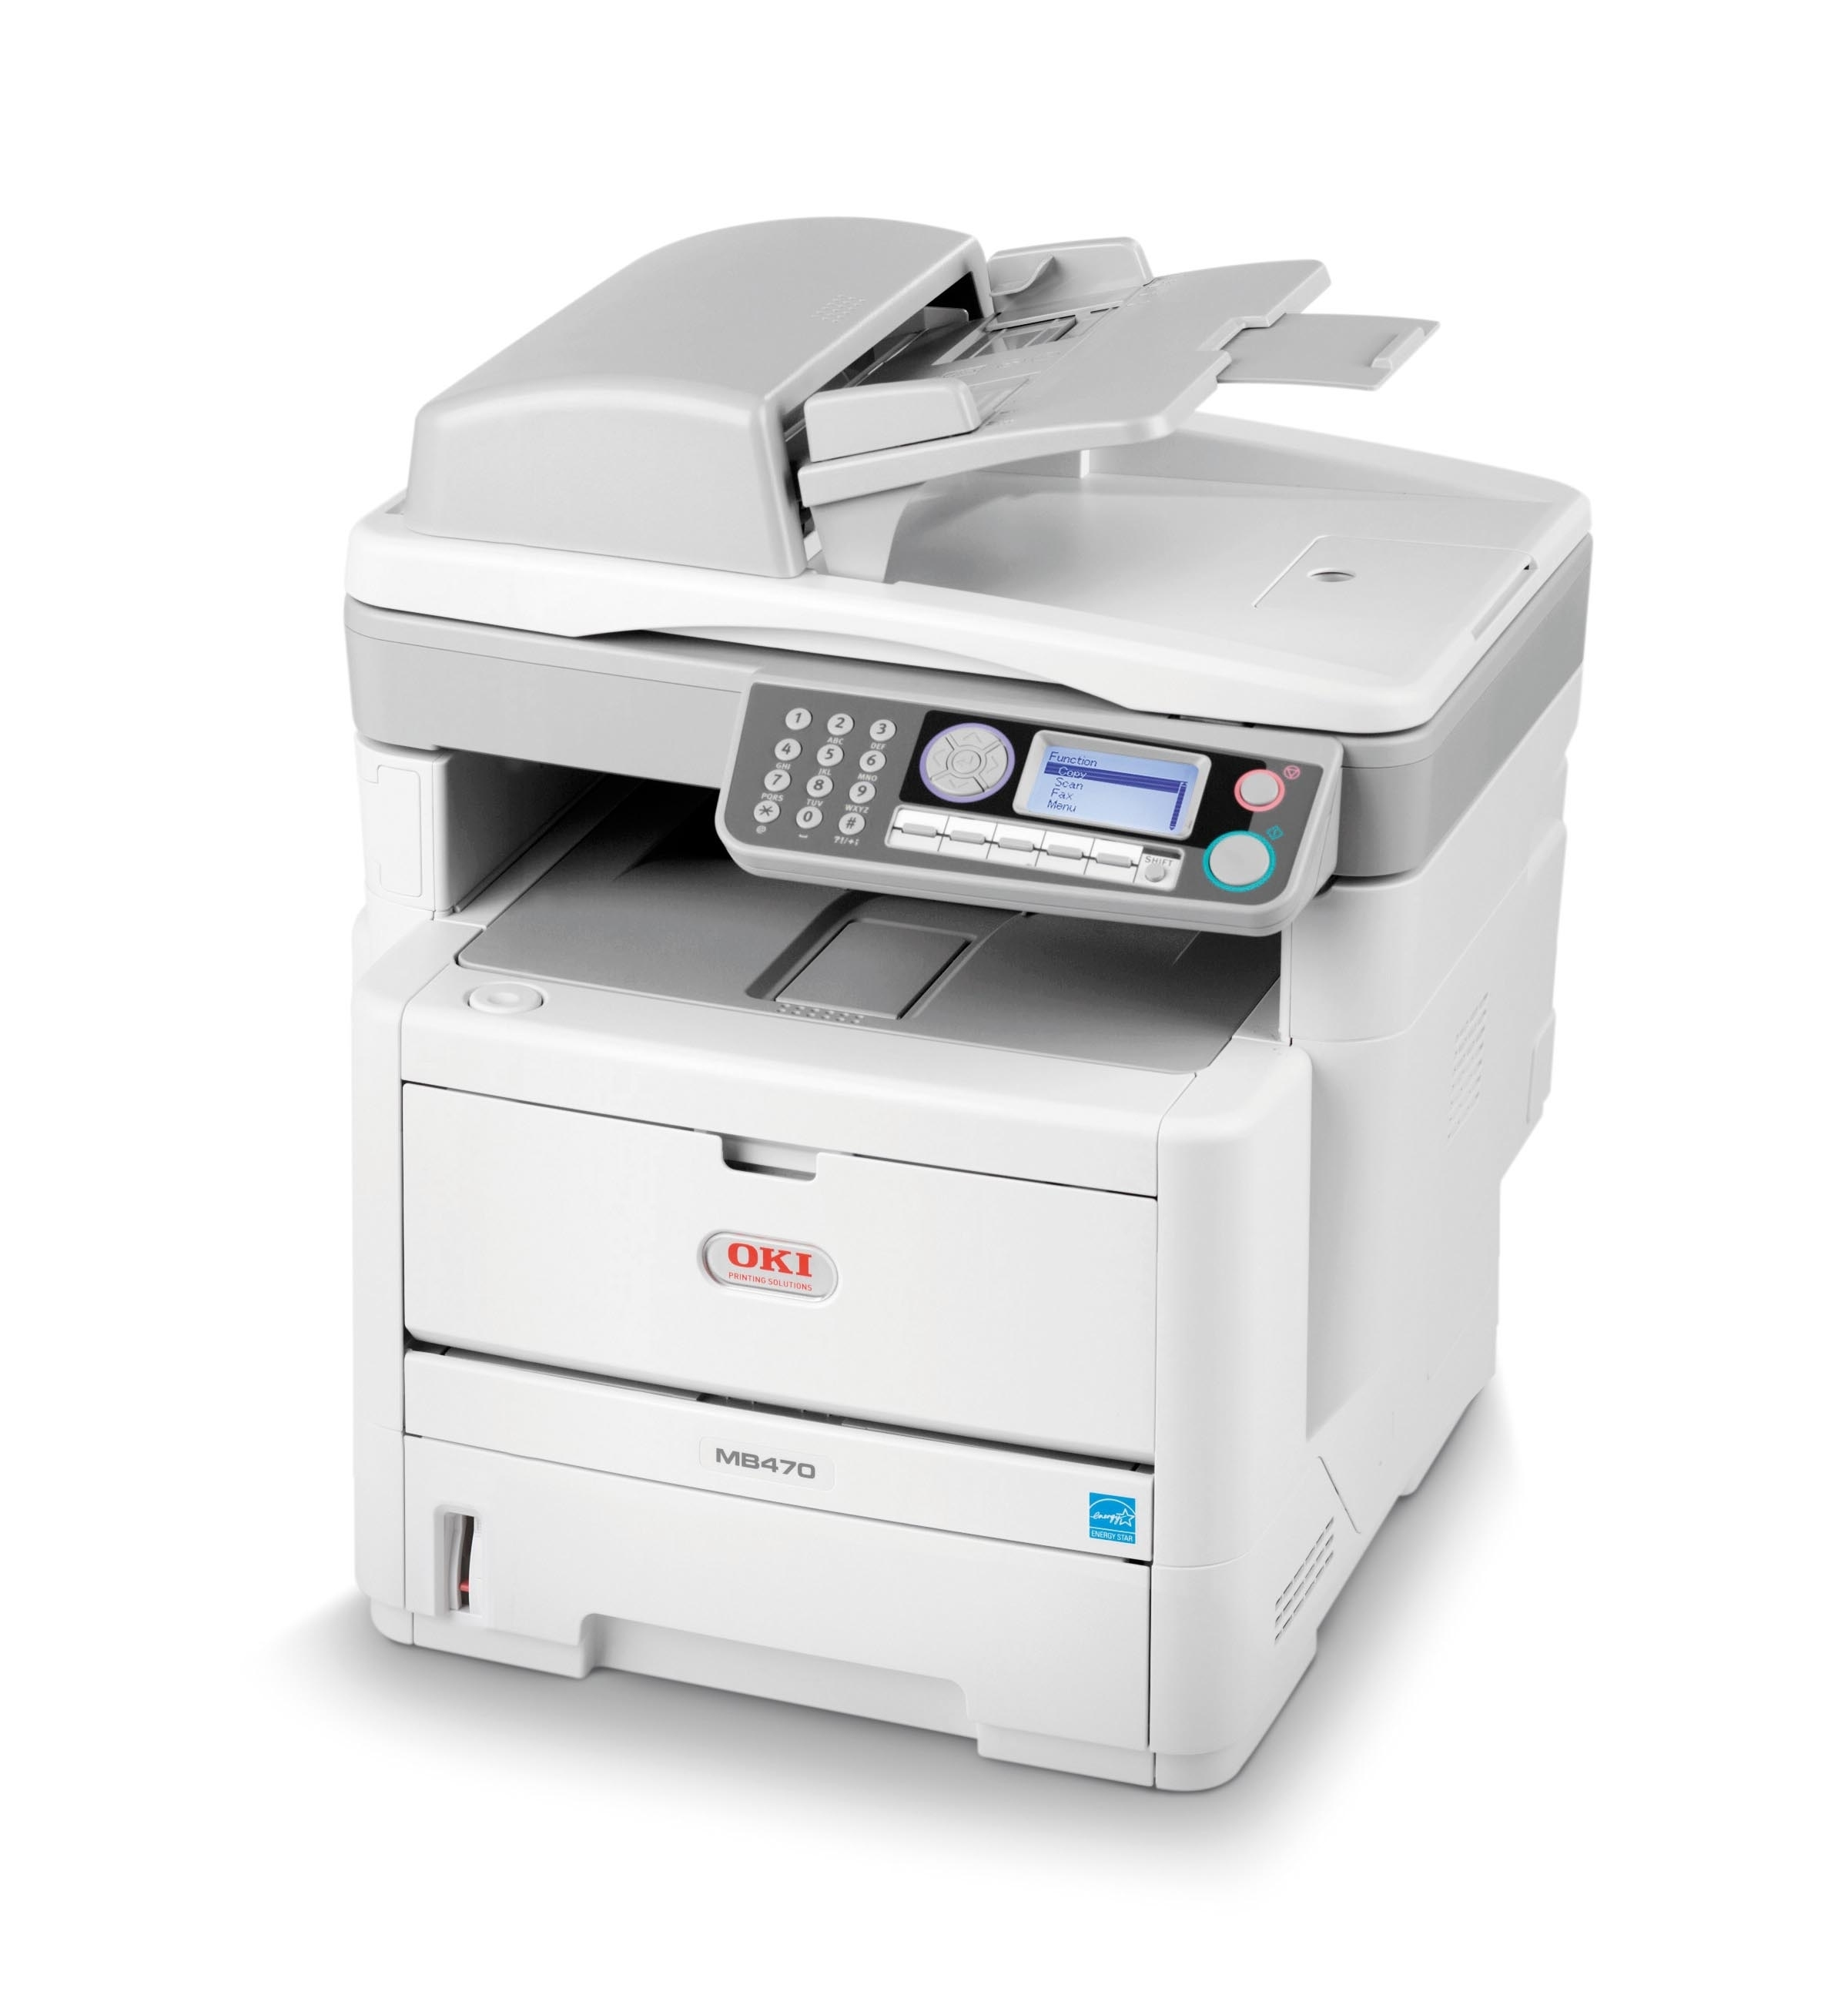 Oki MB470 Printer 44306622 - Refurbished